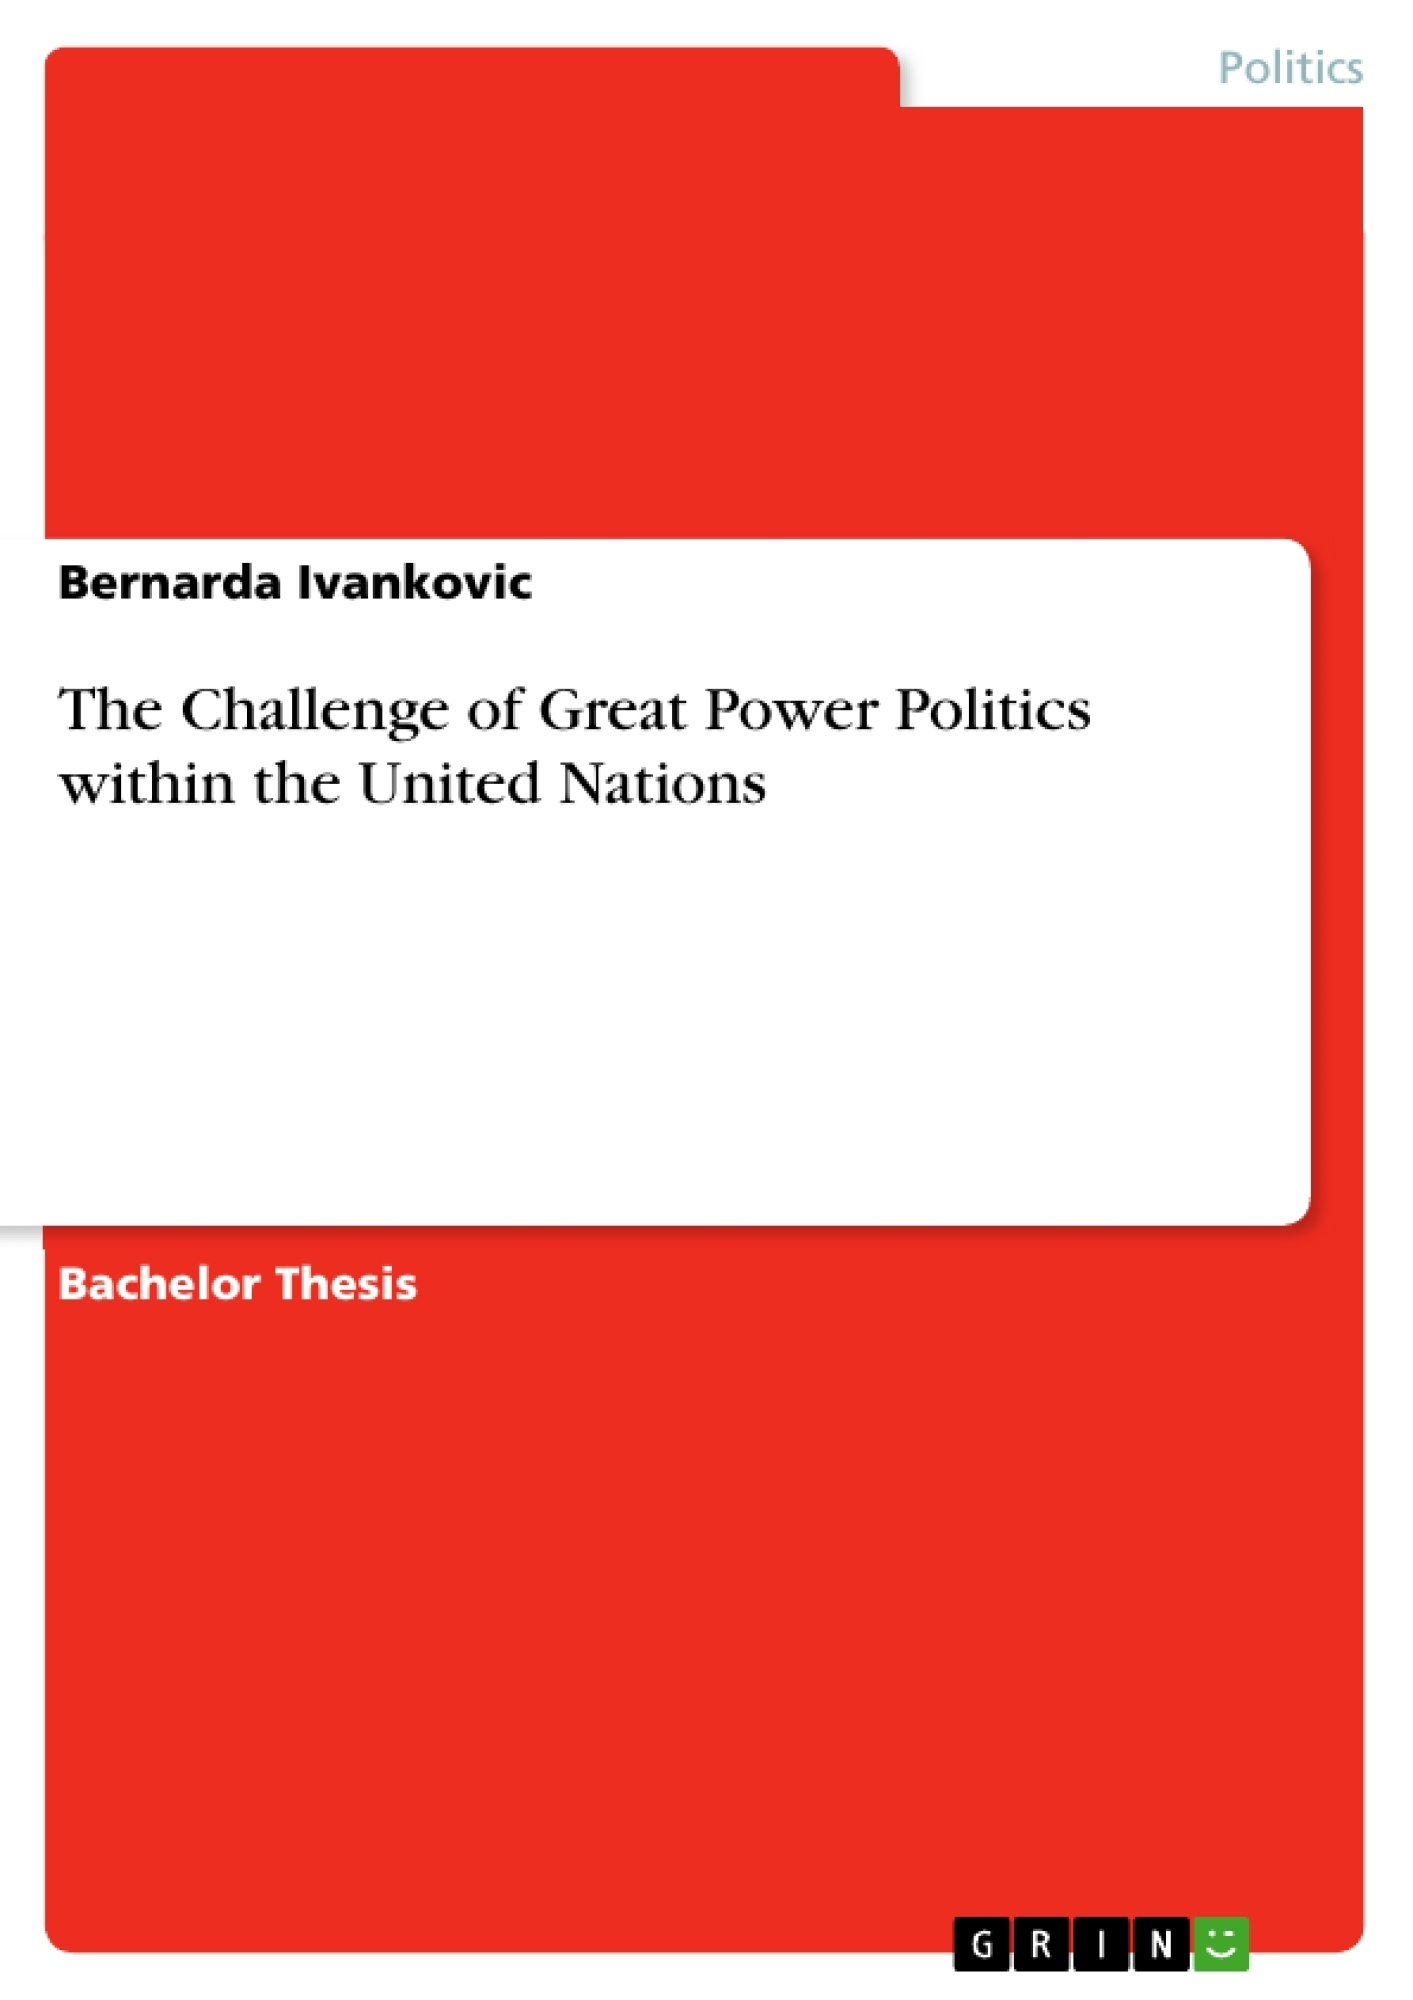 The Challenge Of Great Power Politics Within The United Nations  The Challenge Of Great Power Politics Within The United Nations  Publish  Your Masters Thesis Bachelors Thesis Essay Or Term Paper Compare Contrast Essay Examples High School also Essay Paper Generator  English Essay Websites